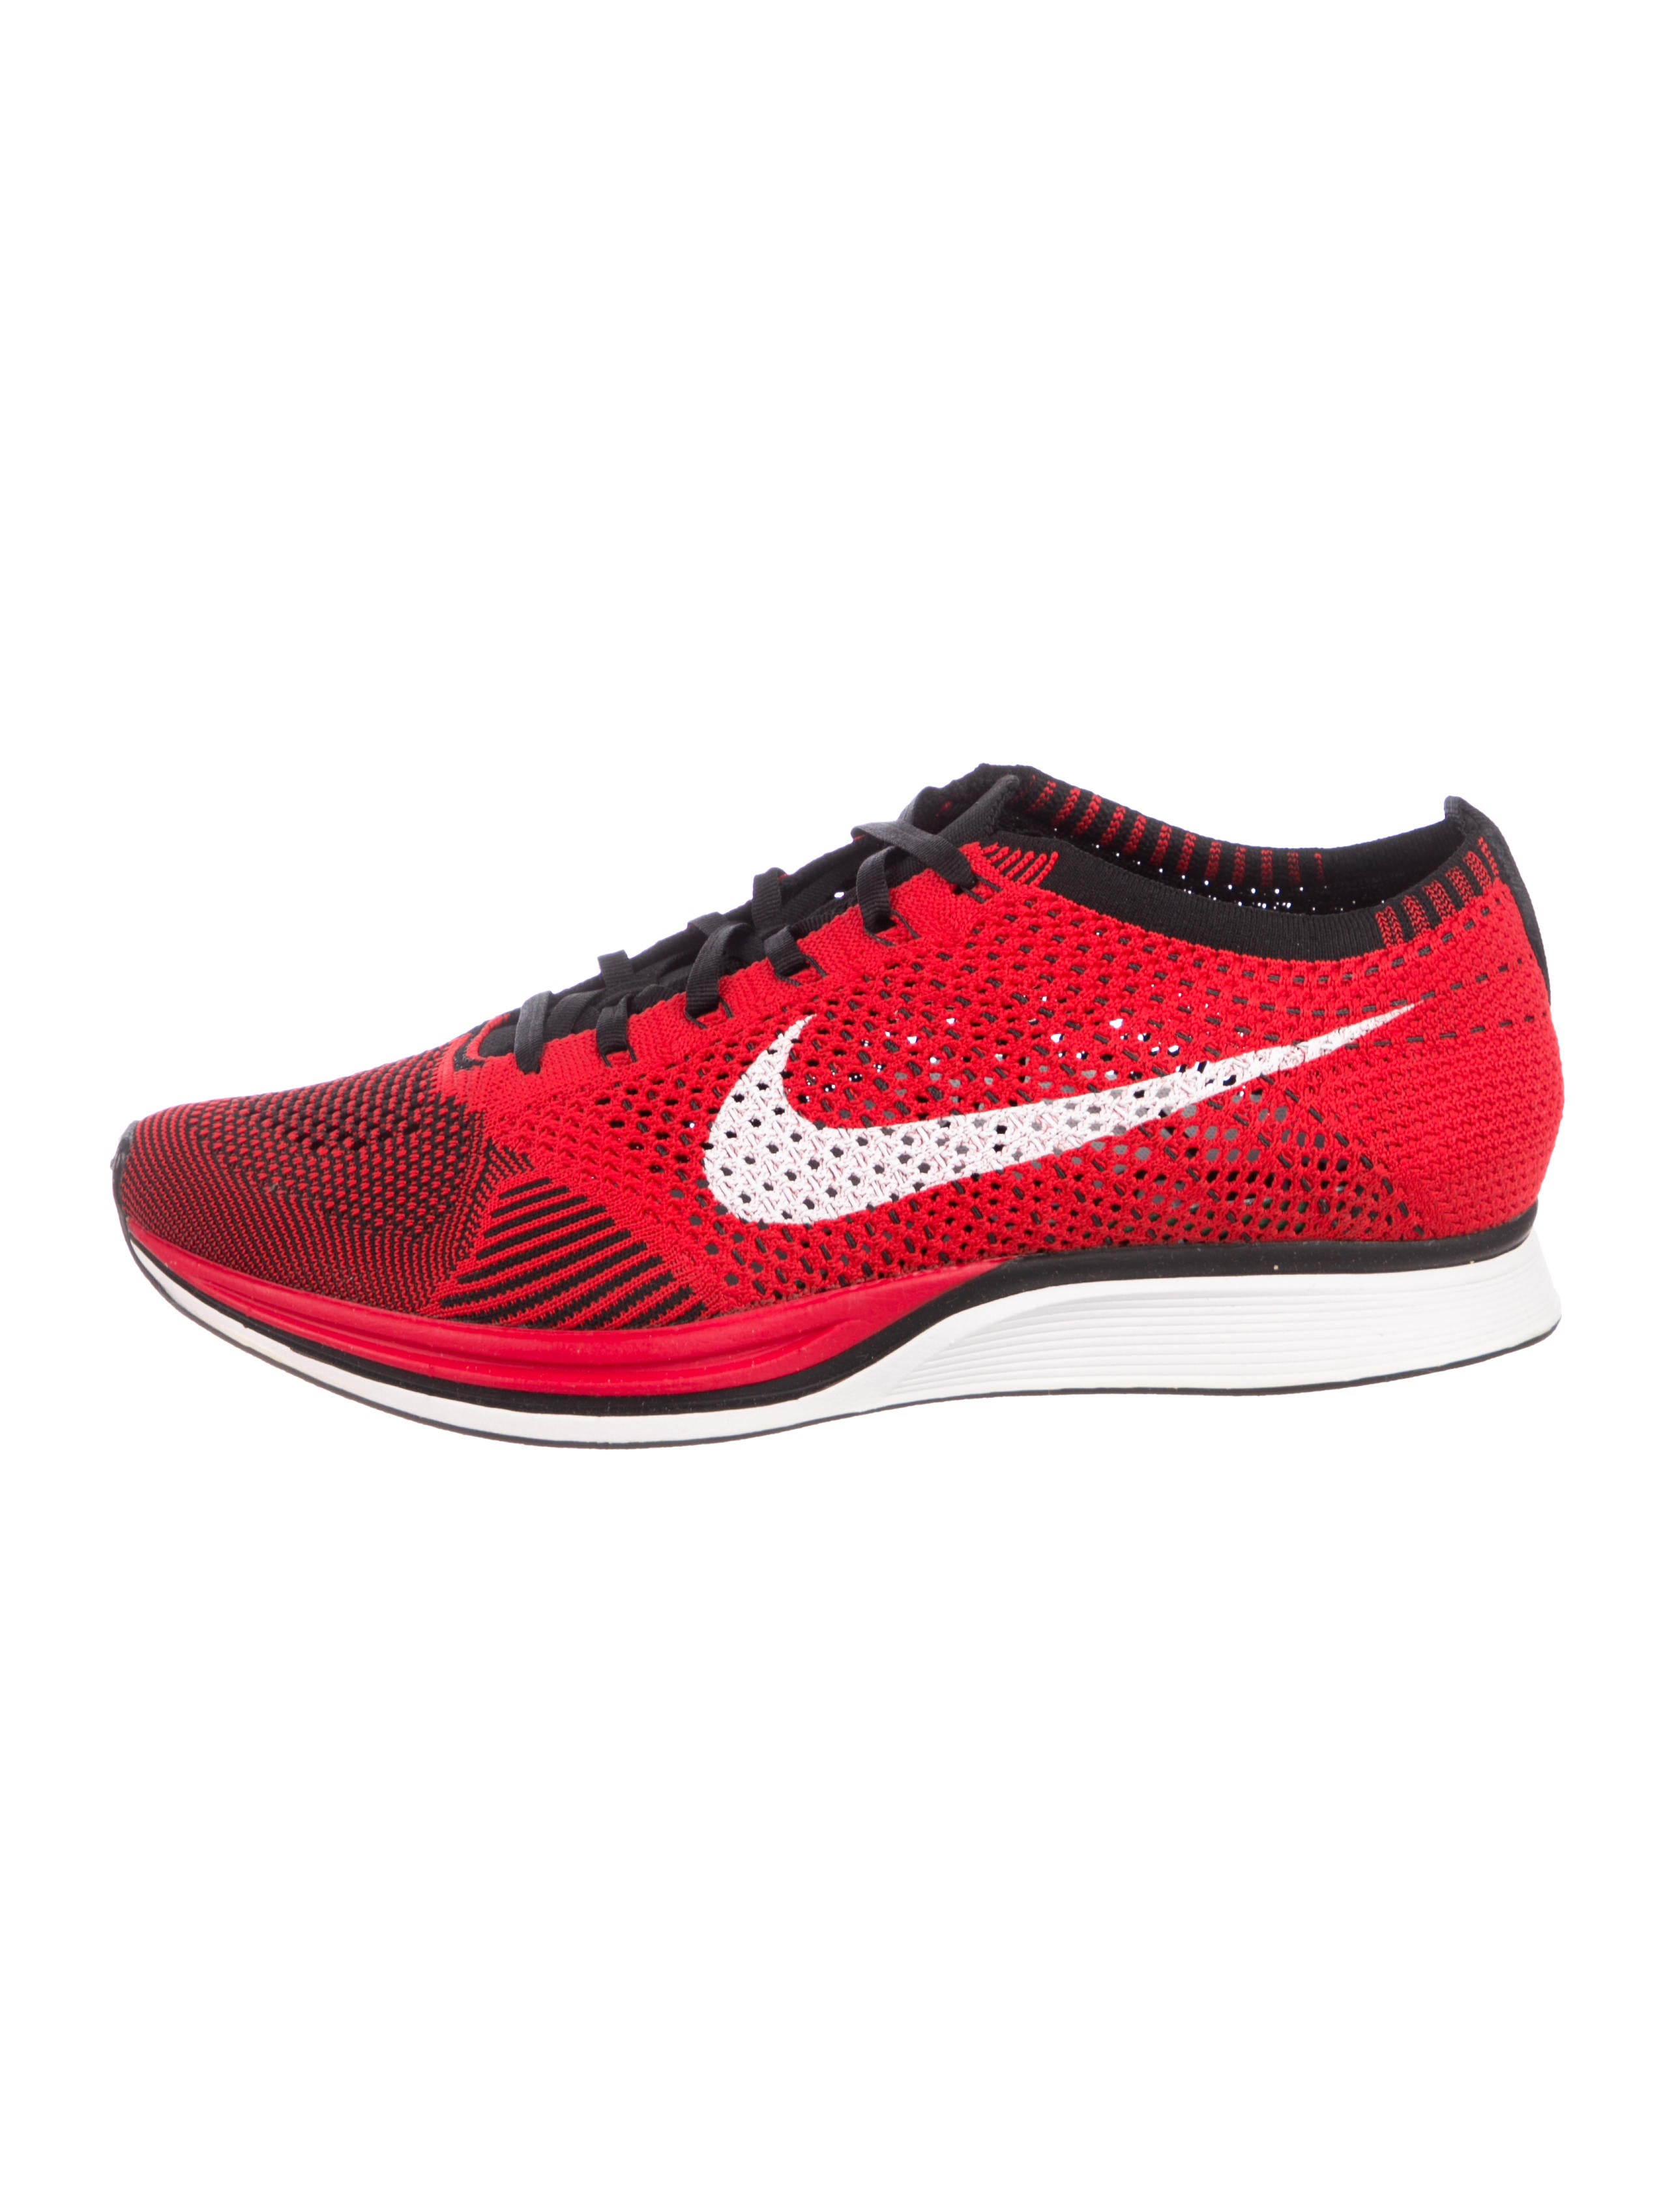 812de11ccee43 Nike Flyknit Racer University Red Sneakers w  Tags - Shoes ...